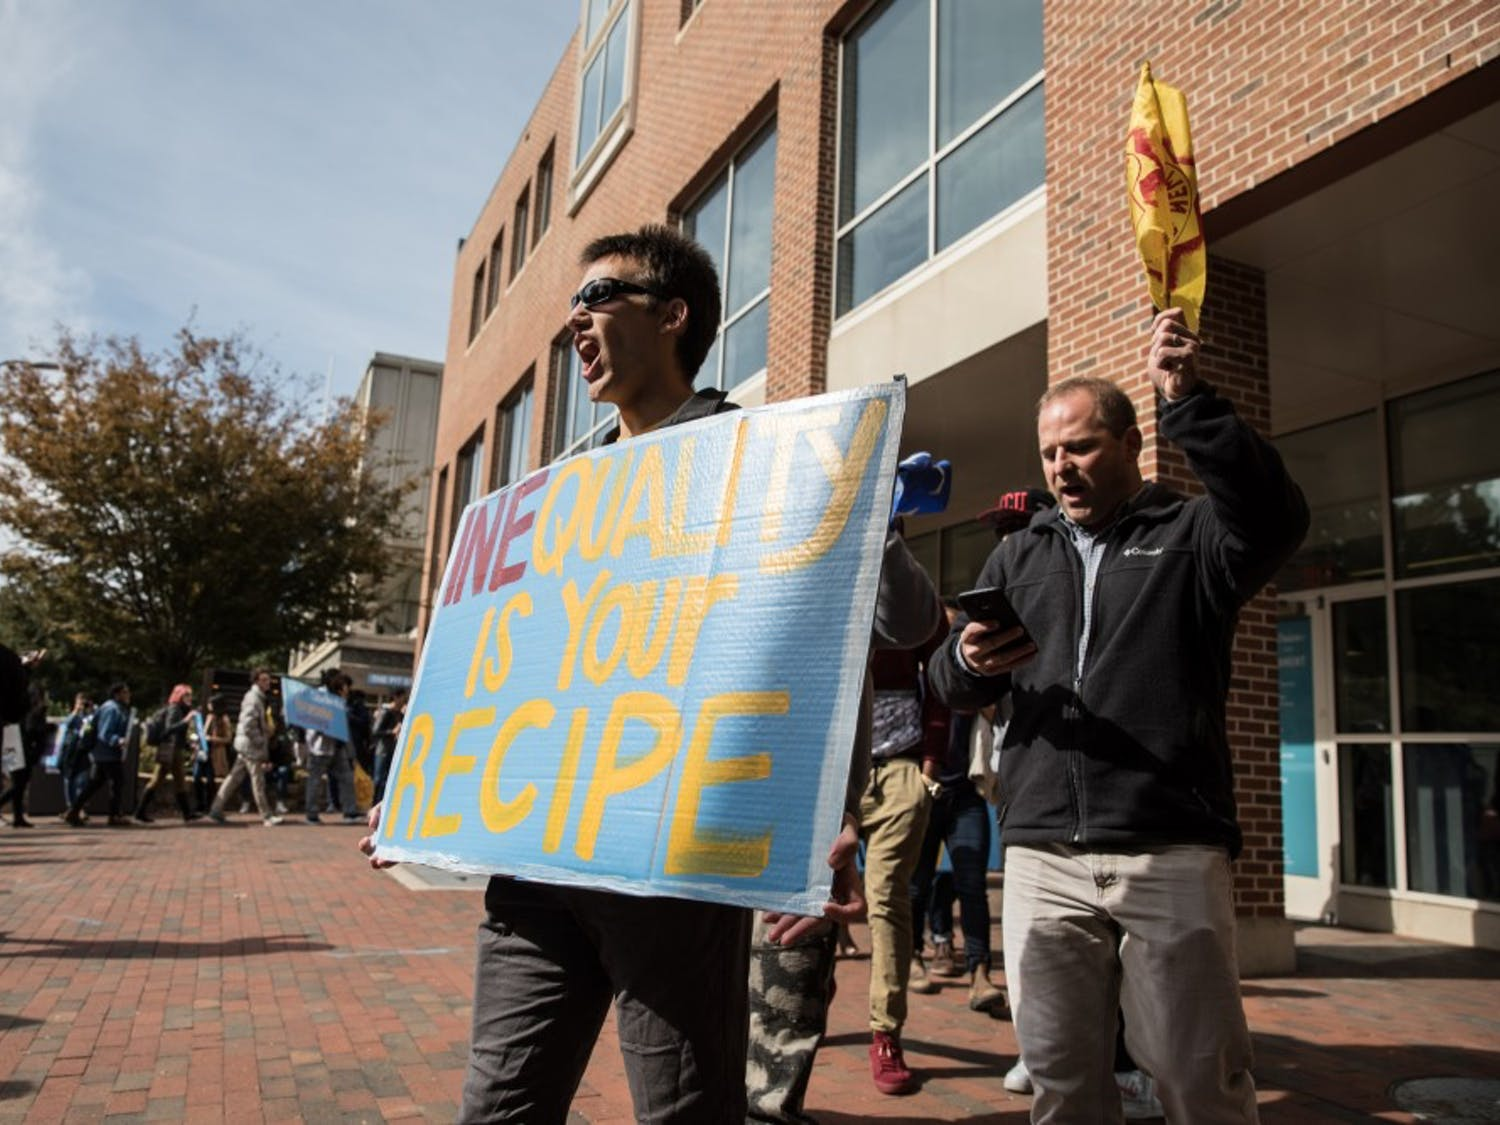 Student activists from the UNC Student/Farmworker Alliance protest Wendy's  in front of  the Wendy's in the bottom of the Frank Porter Graham Student Union in on Thursday, Oct. 25, in Chapel Hill, NC. The student alliance demanded the removal of Wendy's from the campus due to the alleged injustices and human rights abuses of farmworkers through the Fair Food Program.